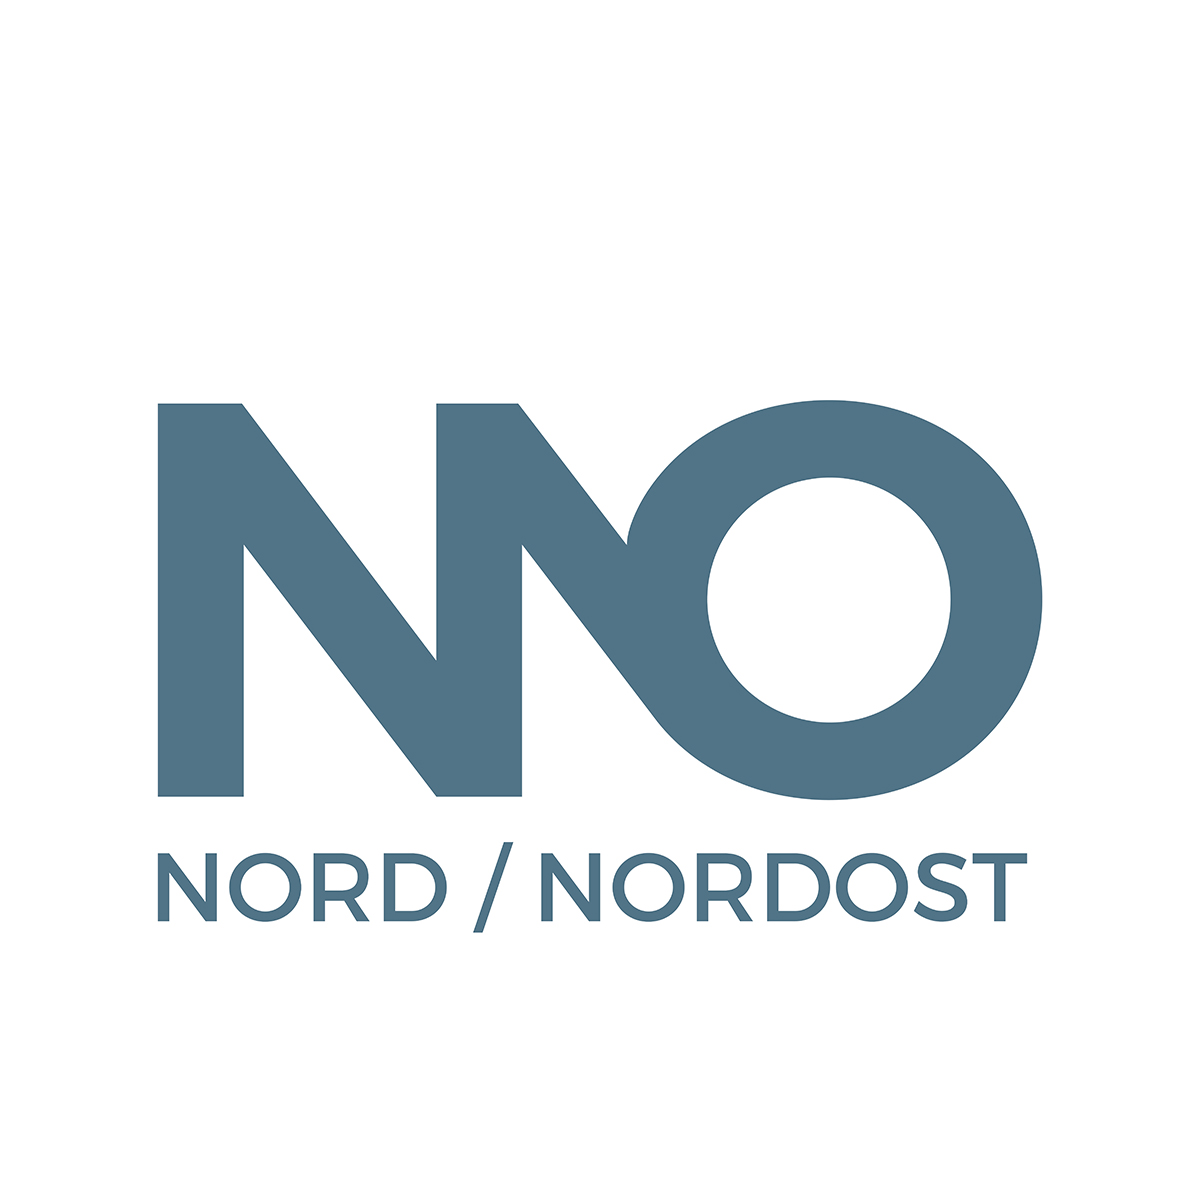 NORD NORDOST Marketing GmbH